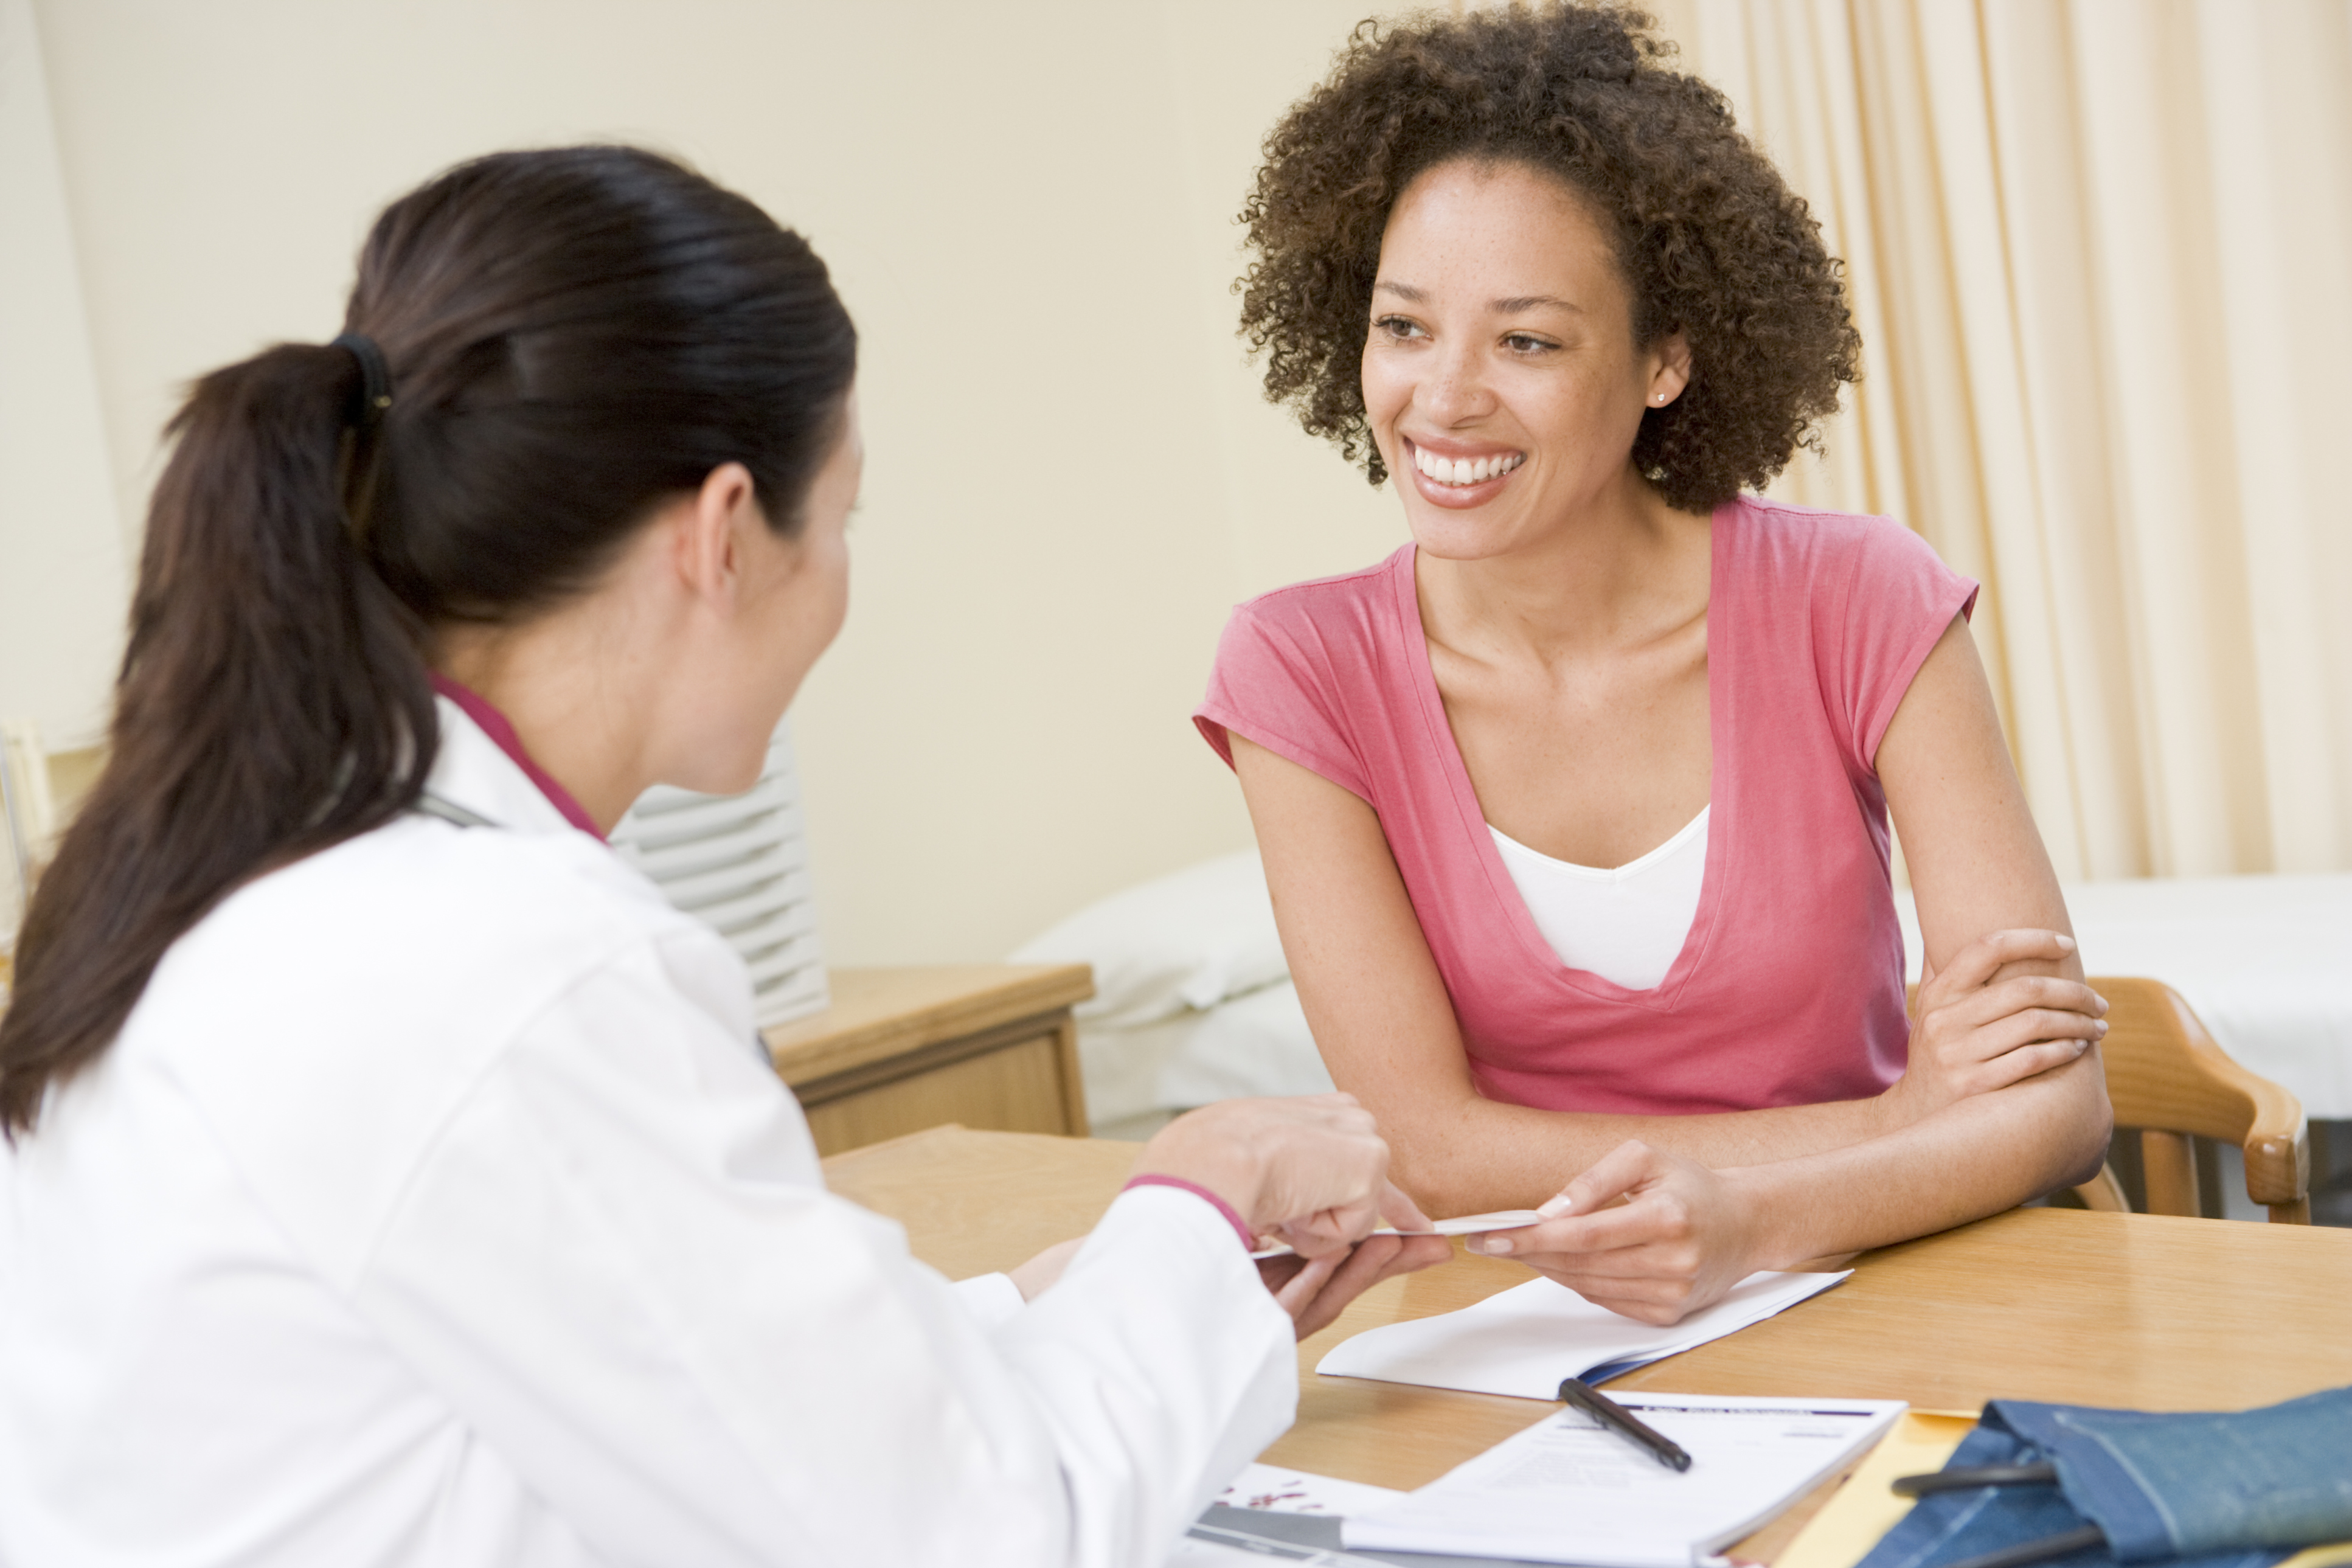 4 More Things That New Moms Ask Lactation Consultants